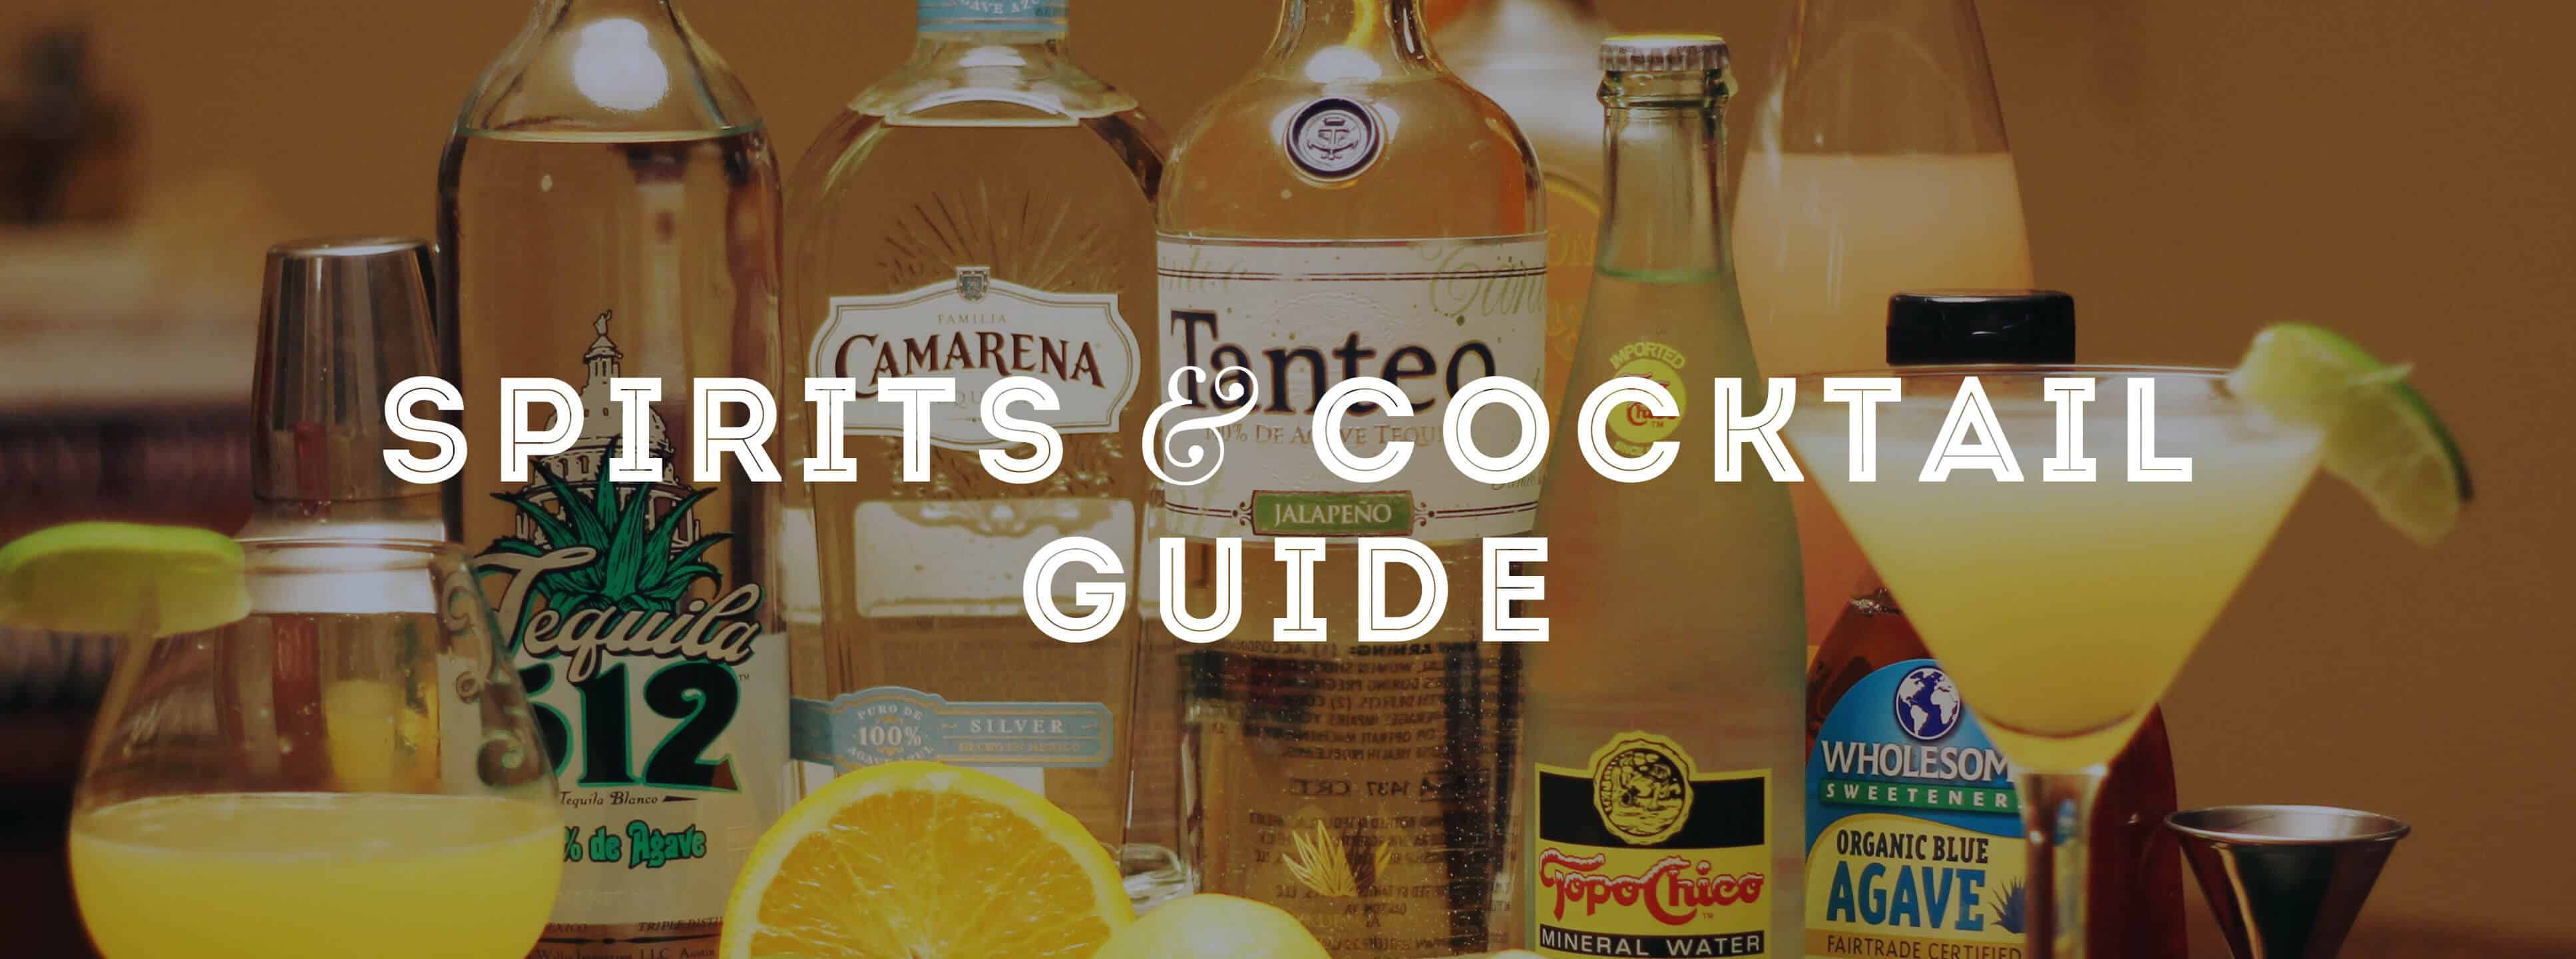 Spirits & Cocktail Guide